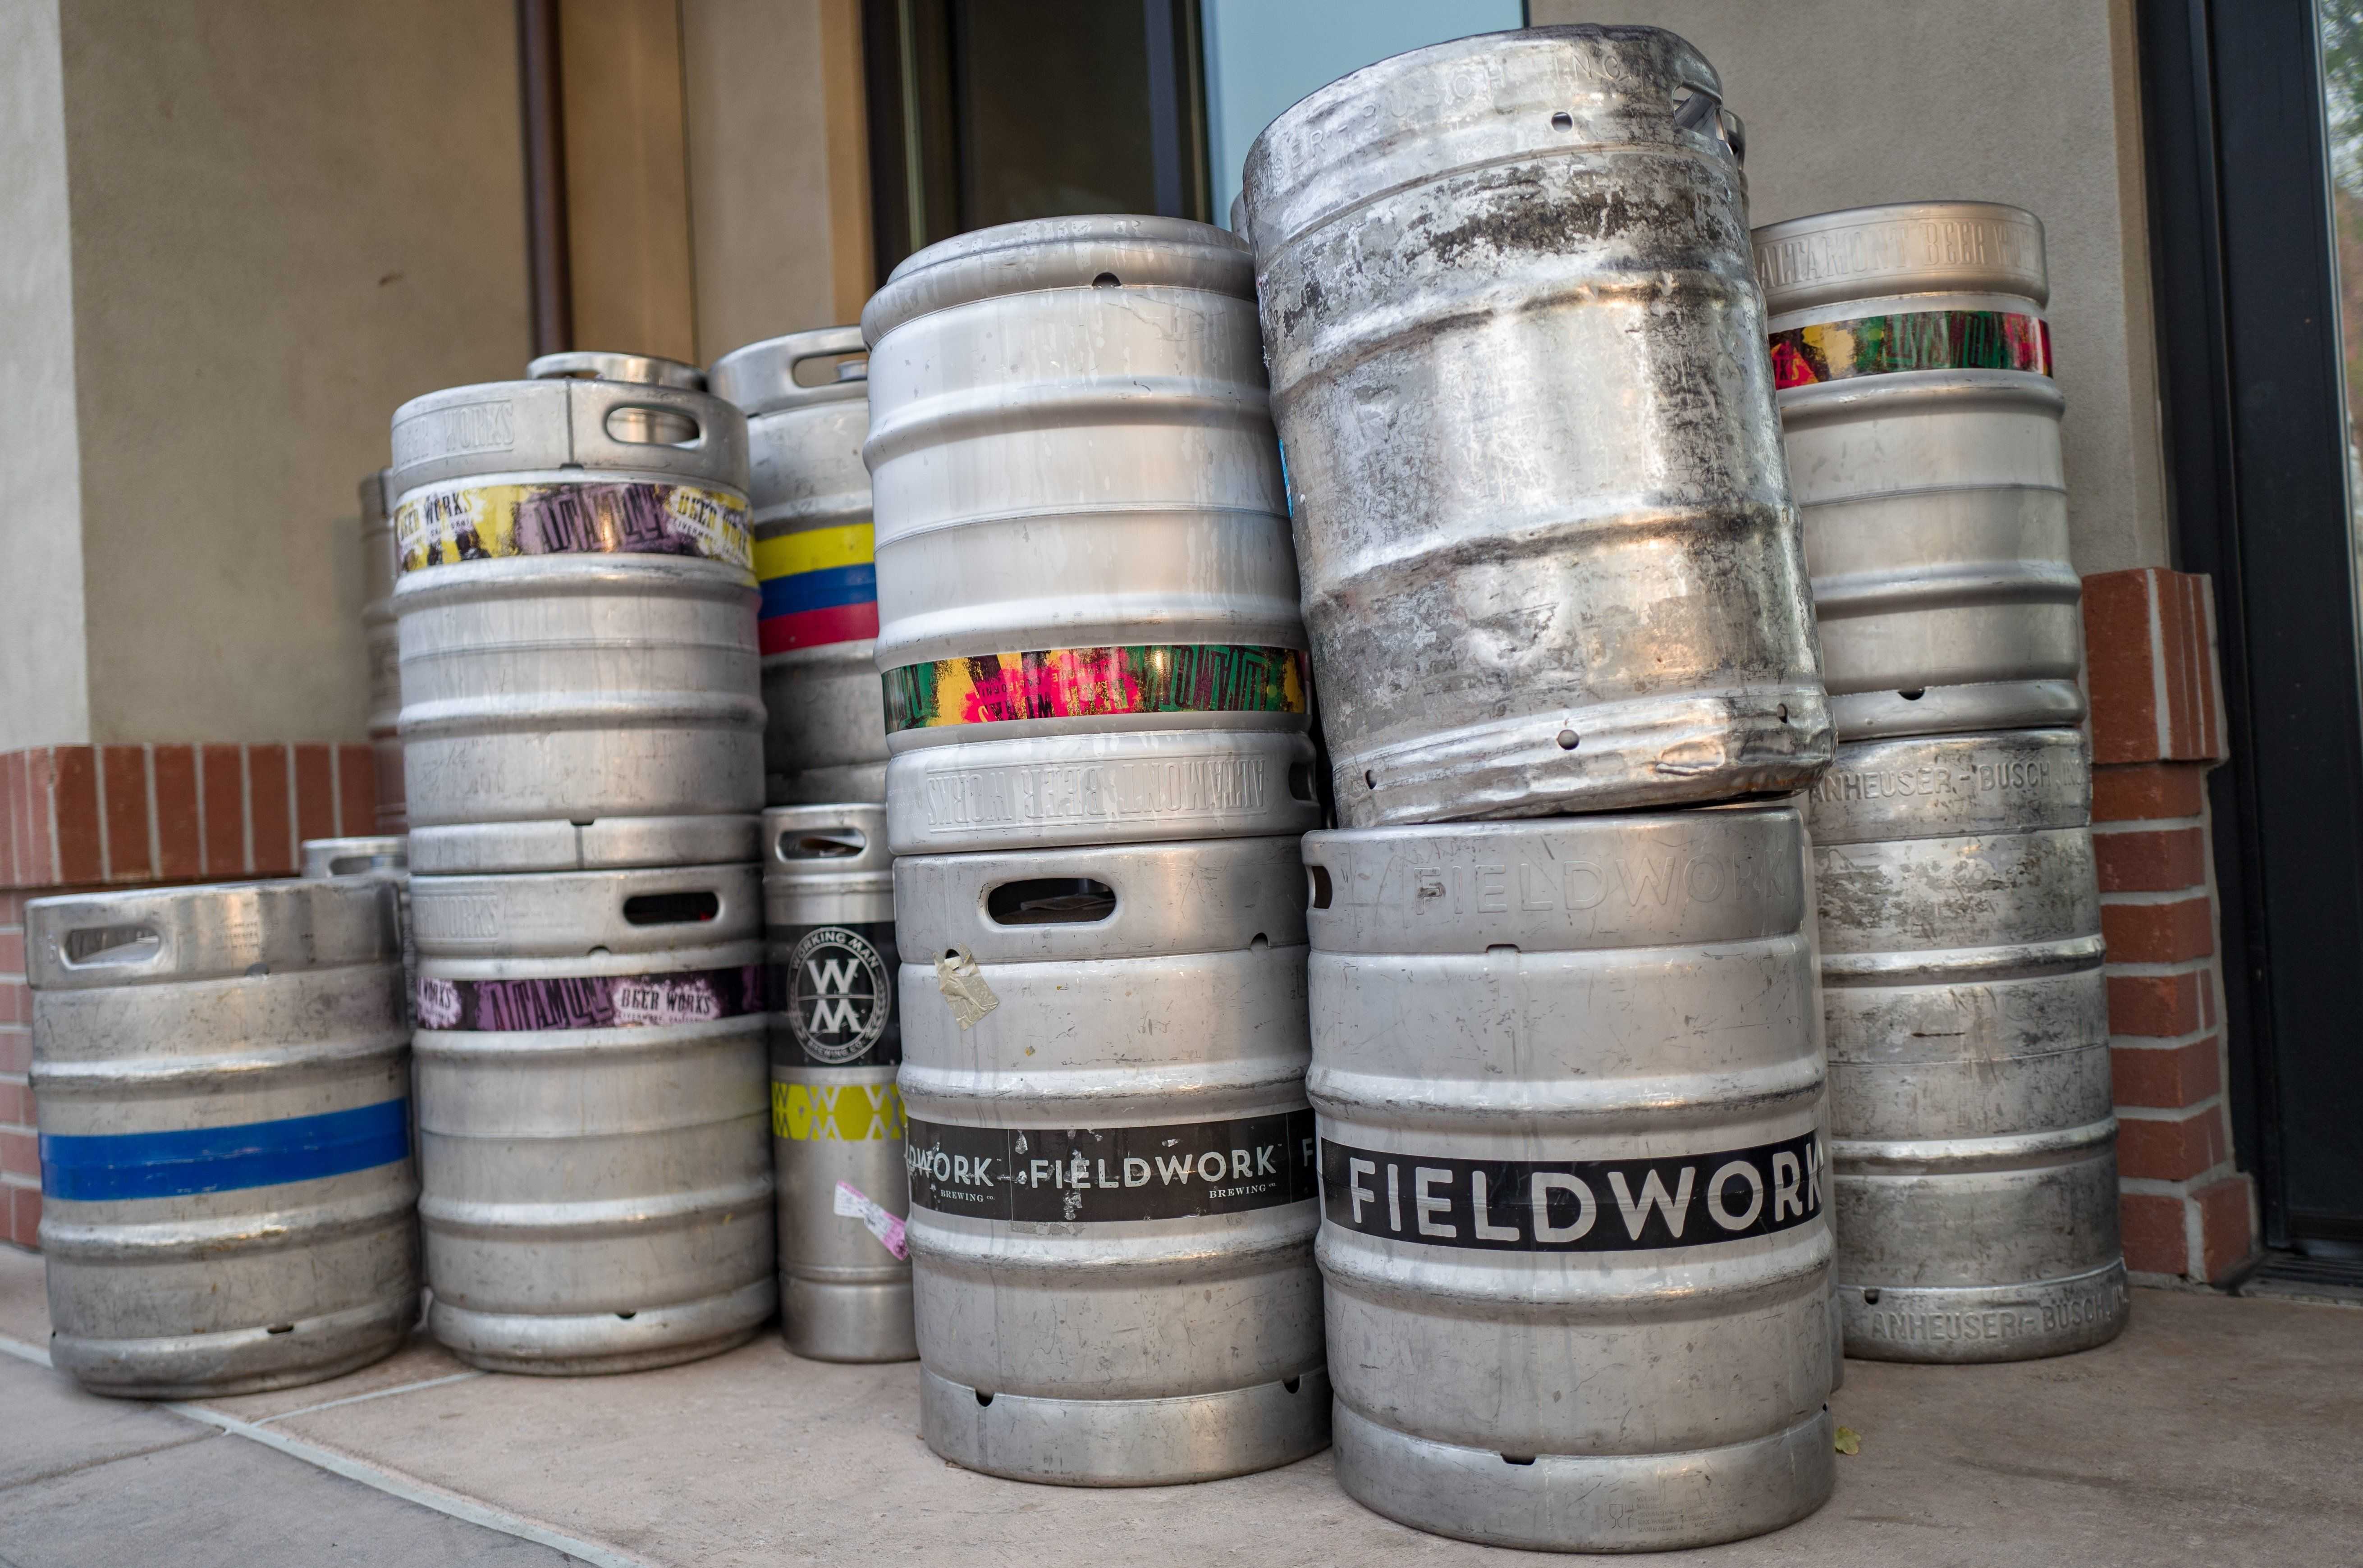 Low-angle view of stack of kegs containing craft brew beer from microbreweries including Fieldwork, in downtown Livermore, California, November 19, 2018. (Photo by Smith Collection/Gado/Getty Images)